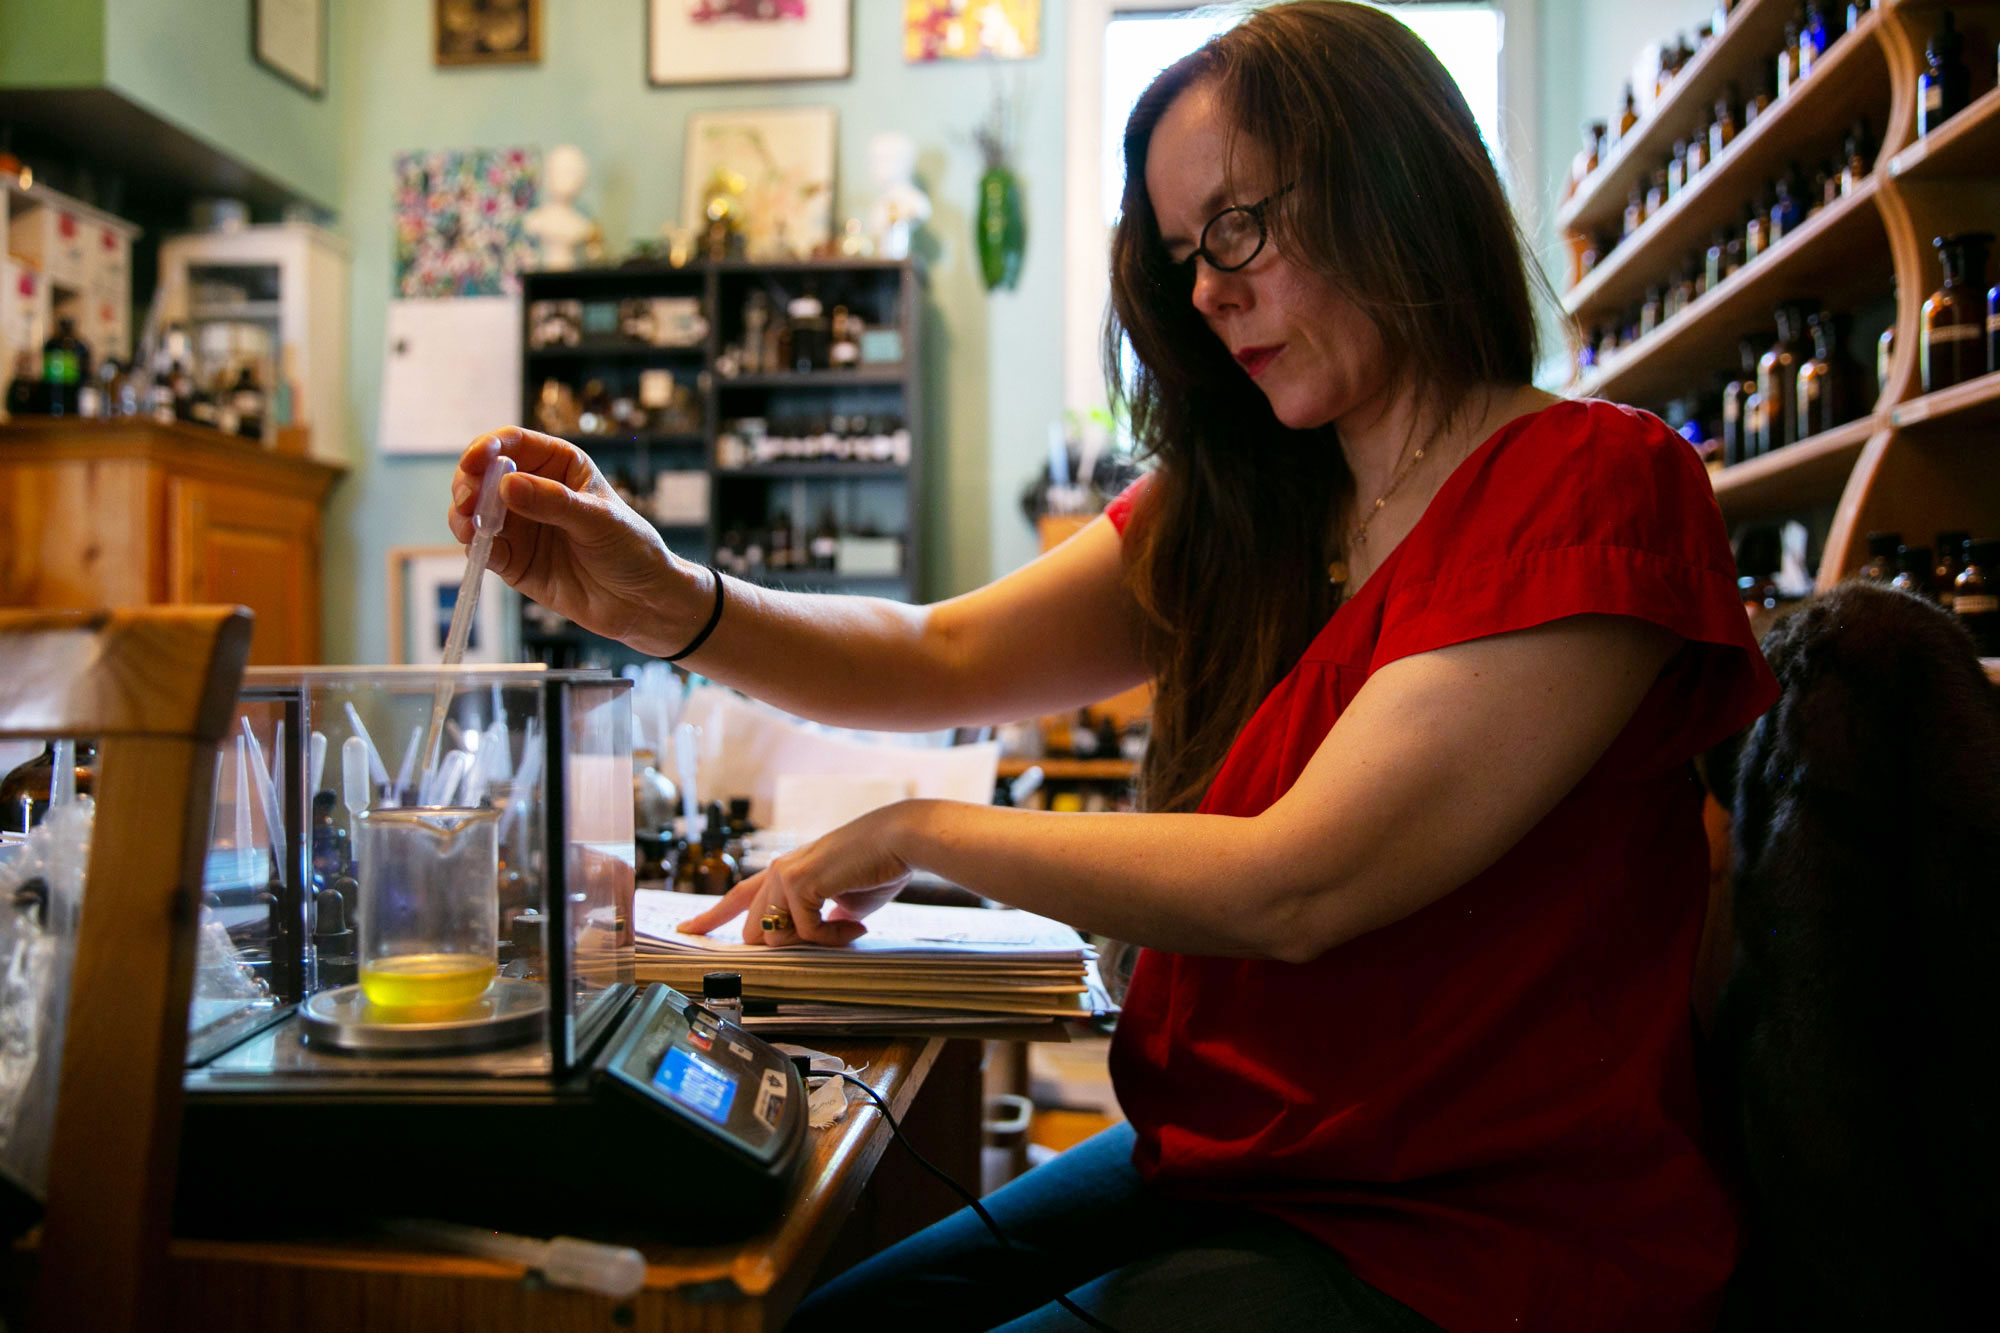 Perfumer Dawn Spencer Hurwitz uses a pipette to prepare a delicate mix of scents in a new perfume she is developing at her Boulder work space on Tuesday, June 4, 2019.